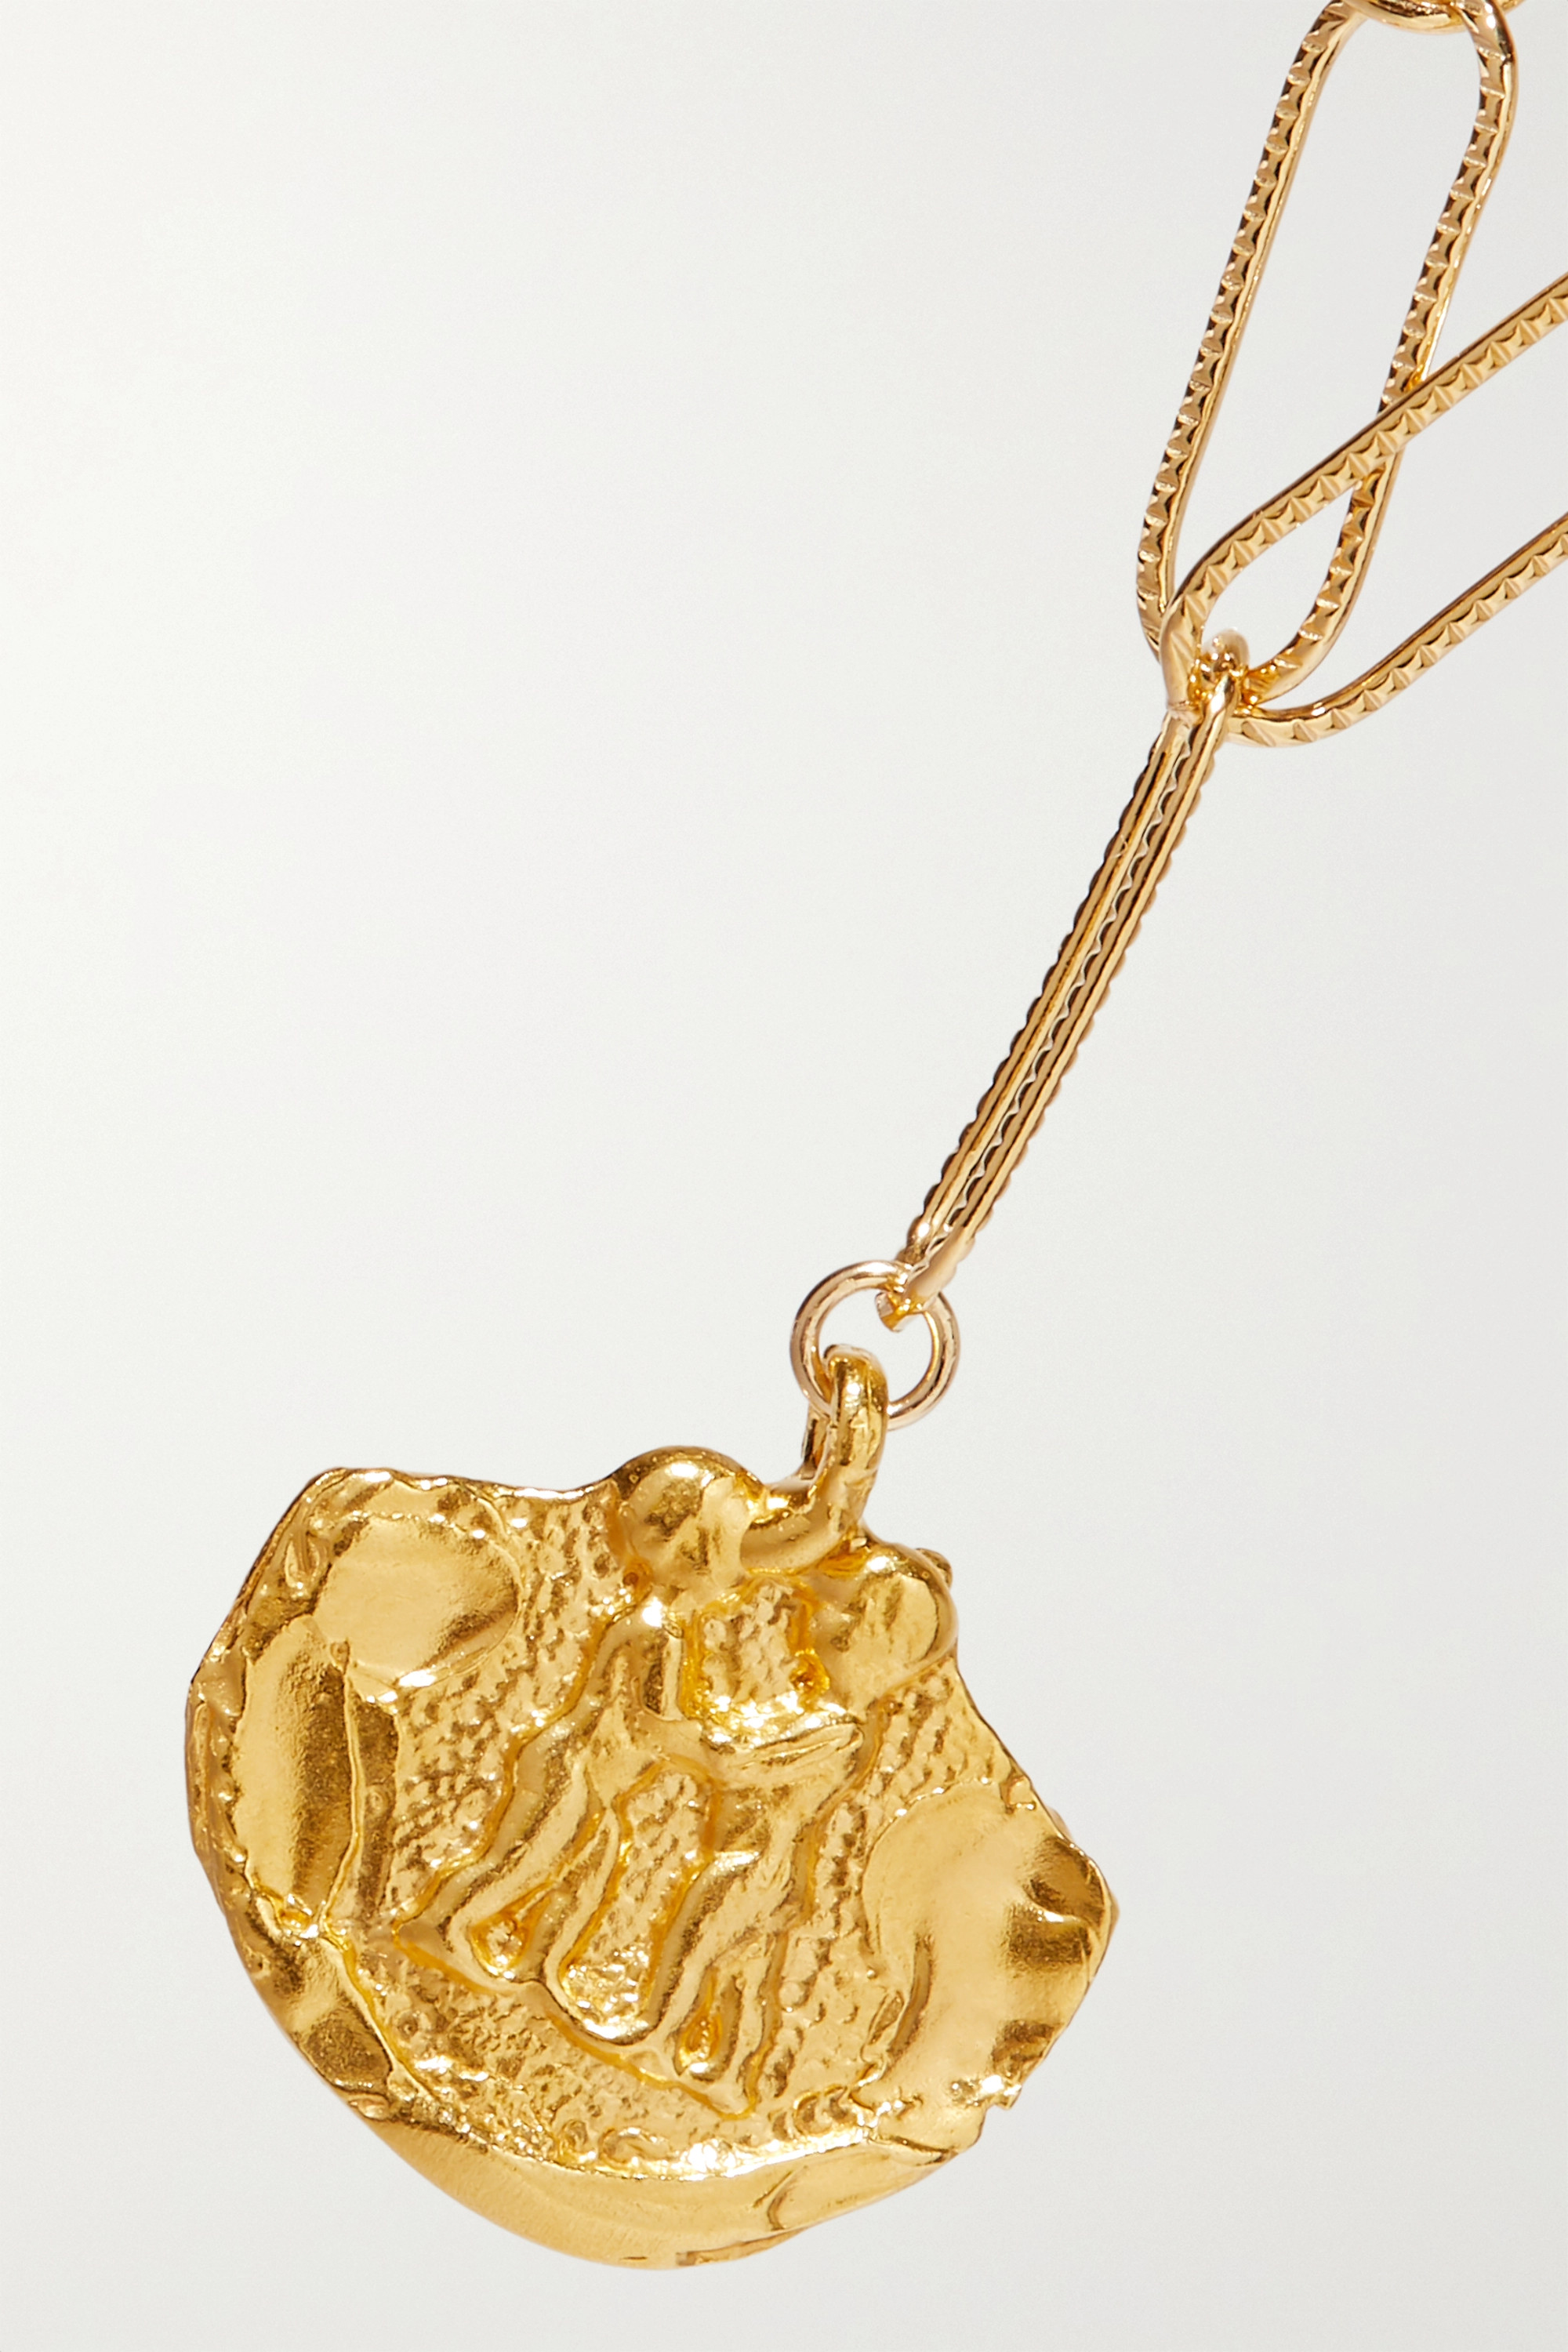 Alighieri Paola and Francesca gold-plated necklace